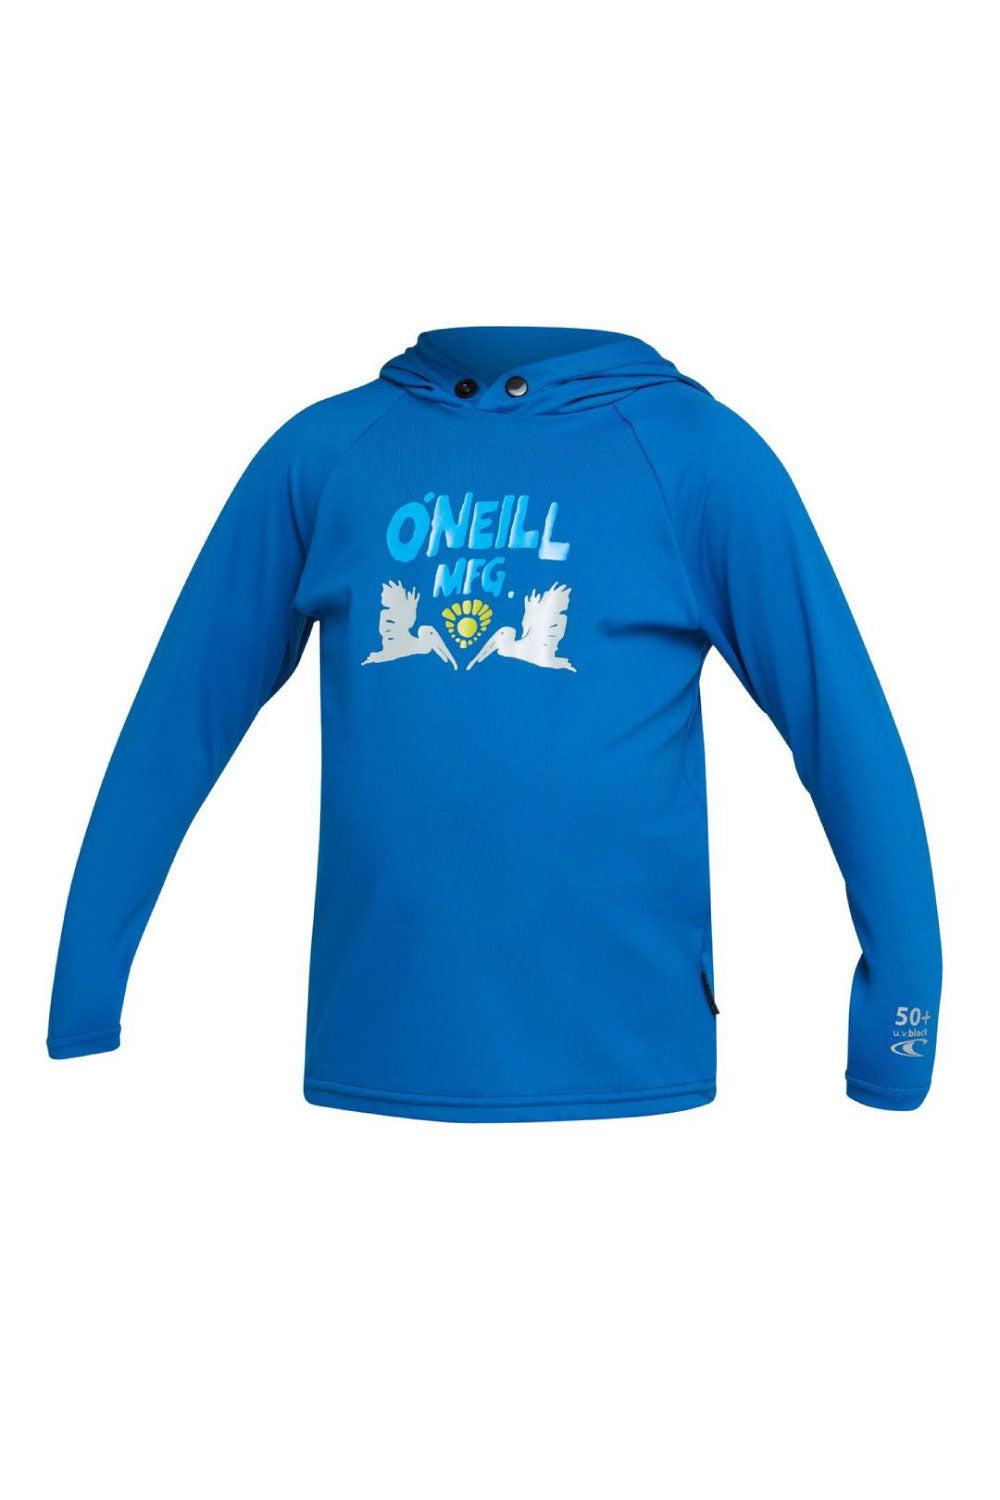 O'Neill Toddler Skins Hoodie Rash Vest - Ultra Blue